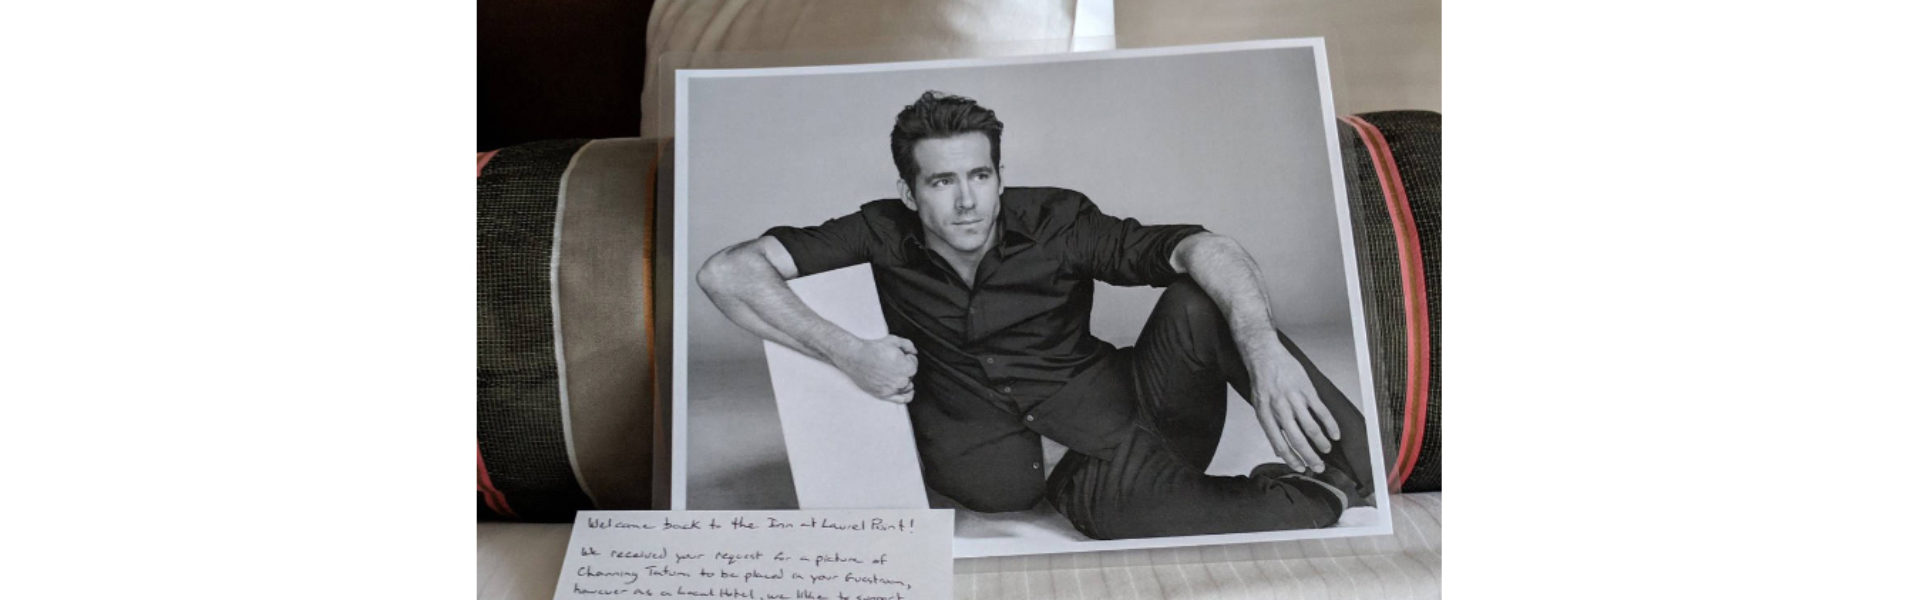 header image - black and white photo of actor Ryan Reynolds on bed with handwritten note